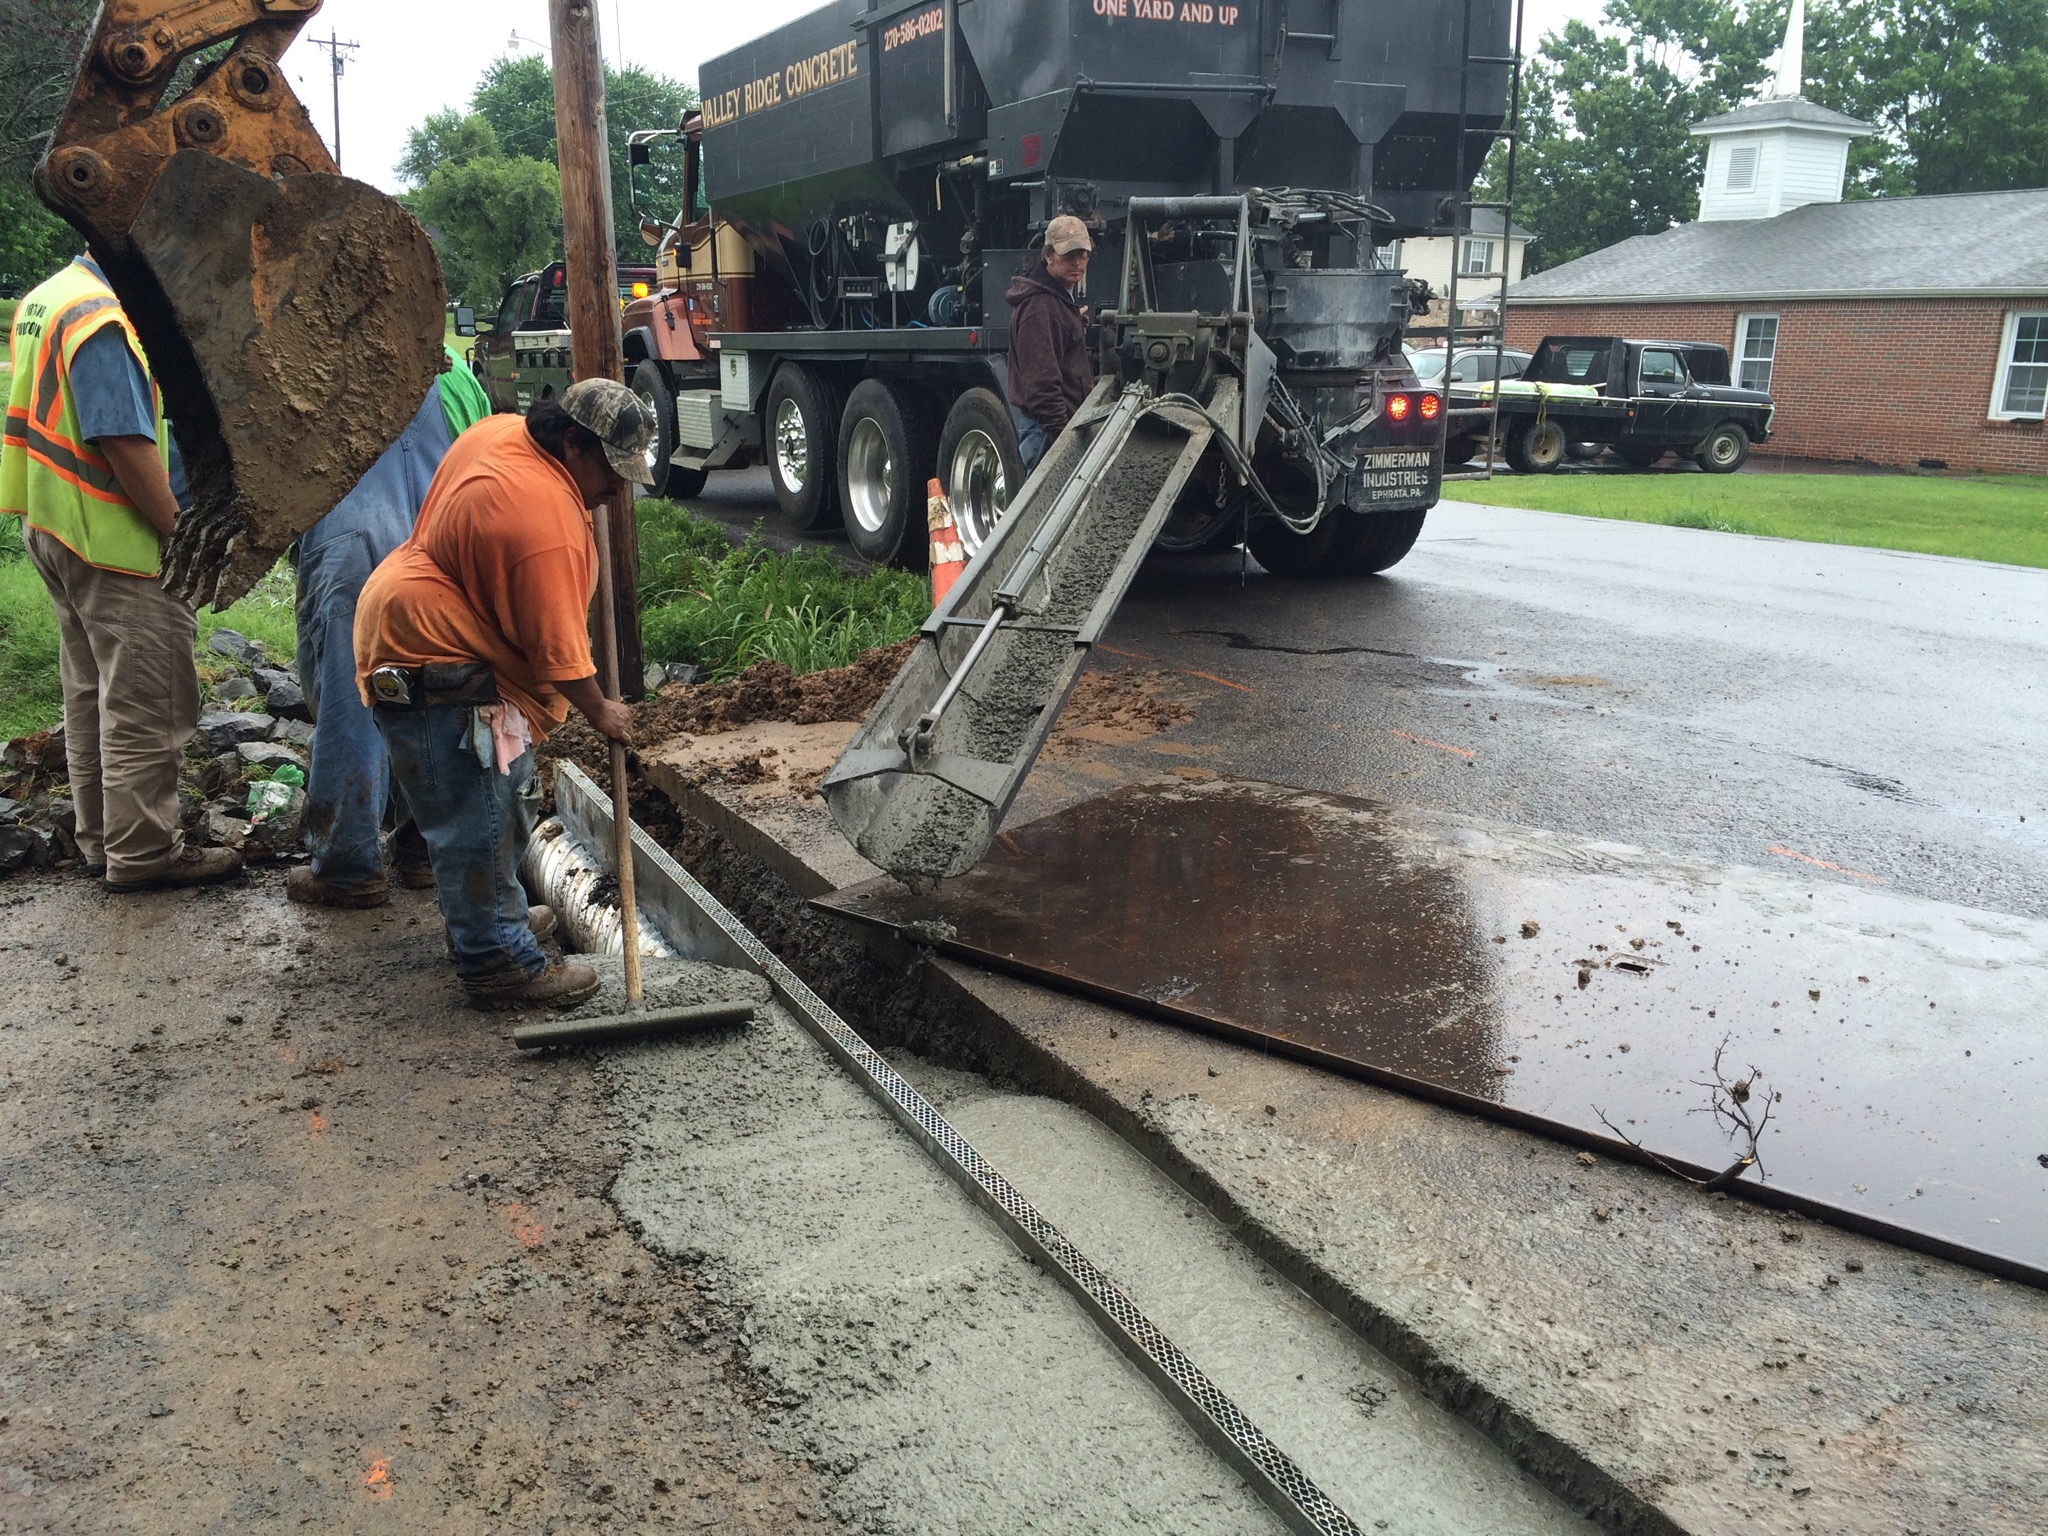 crew installing a new drainage system and pouring concrete